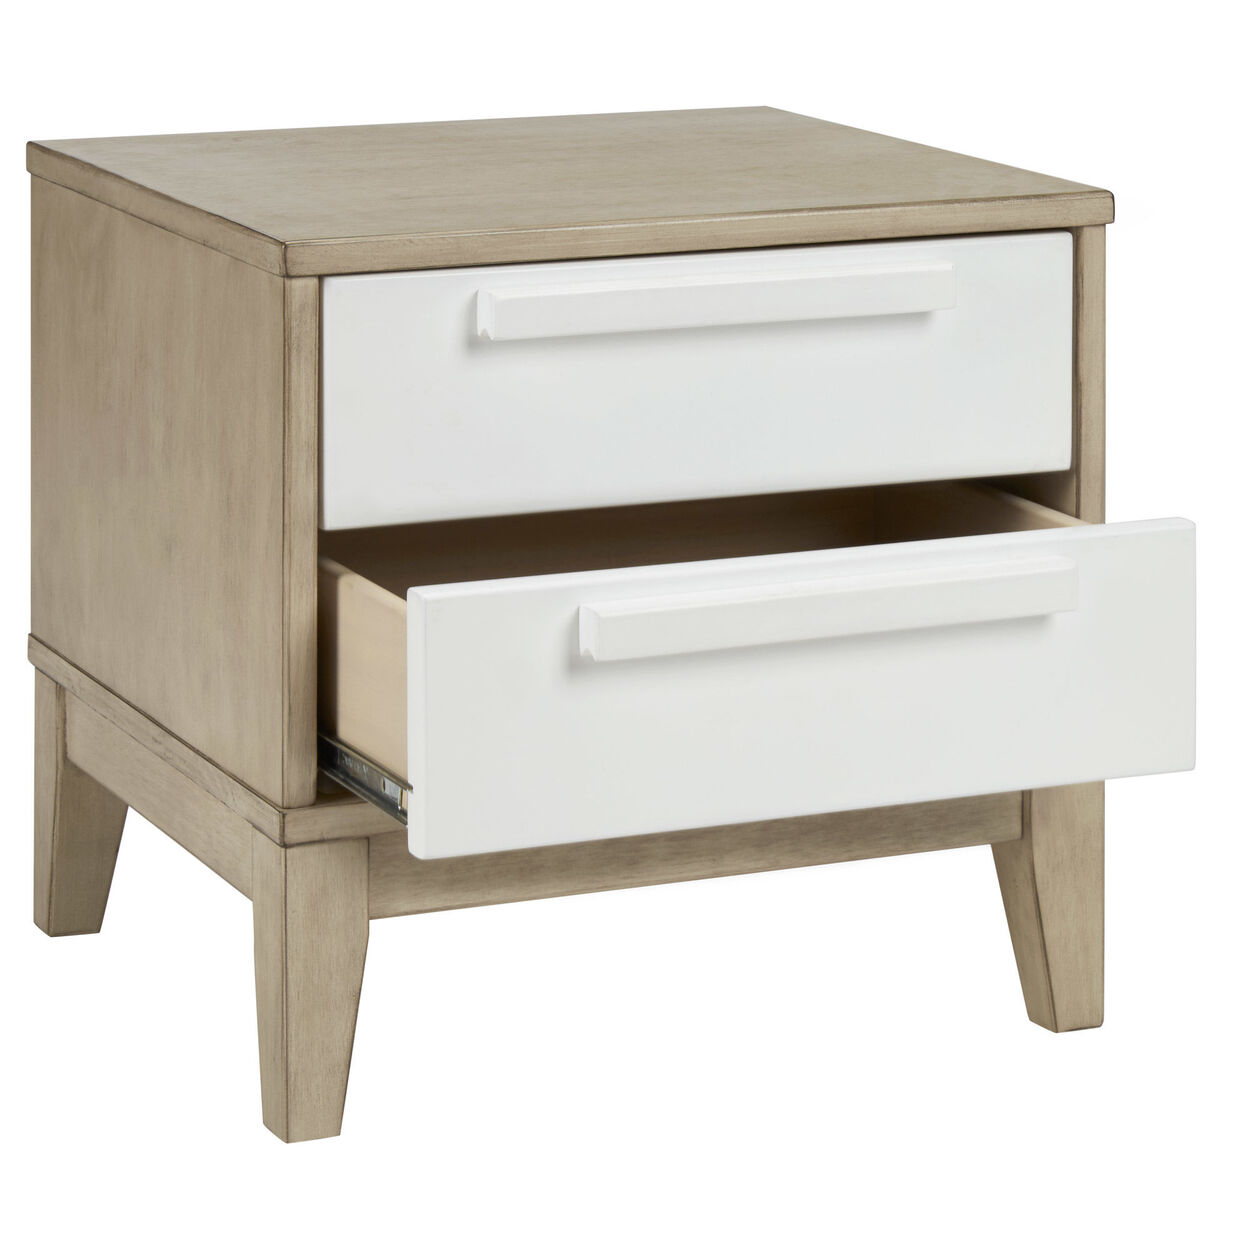 Wood Nightstand with Drawers